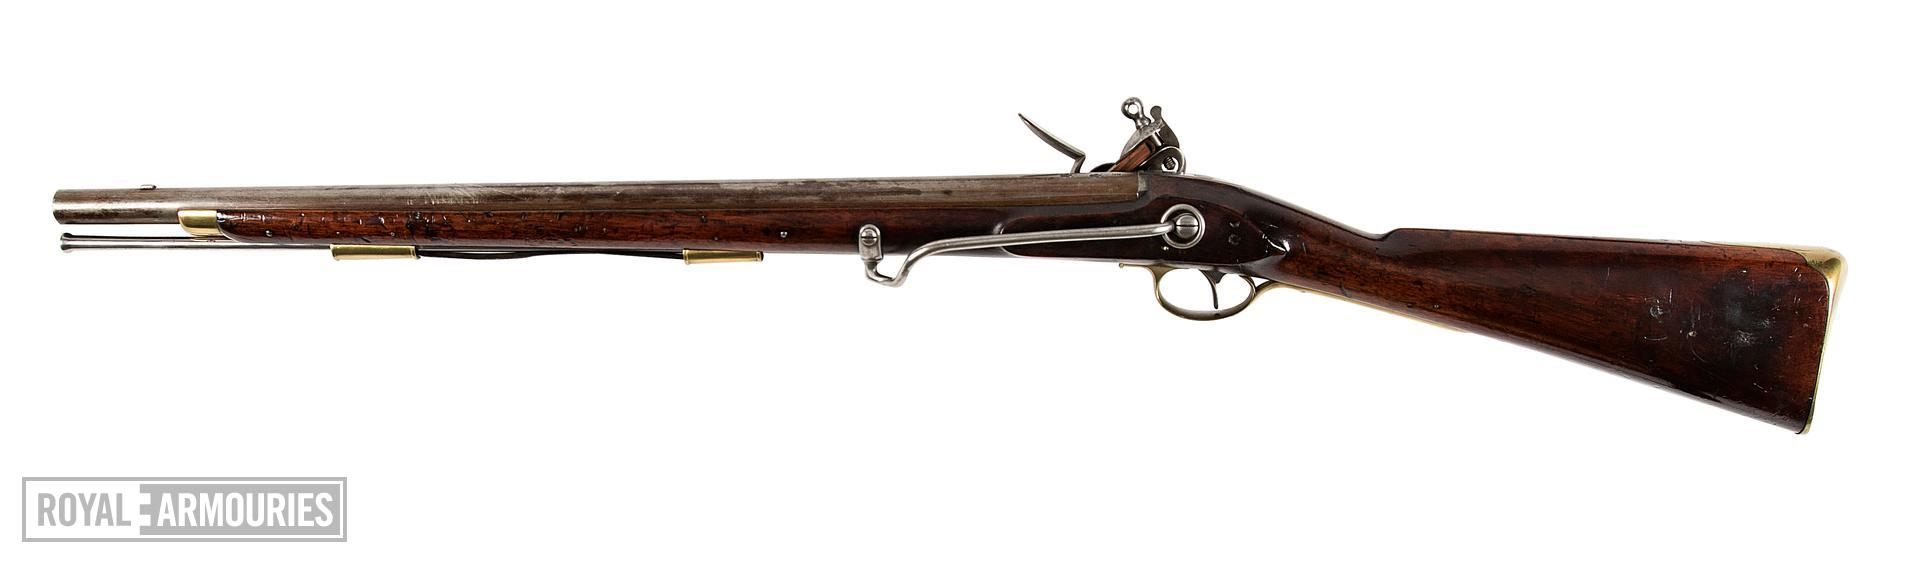 Flintlock military carbine - Pattern 1796 Heavy Dragoon, sealed pattern For 1st Dragoon Guards By Henry Nock with his screwless lock